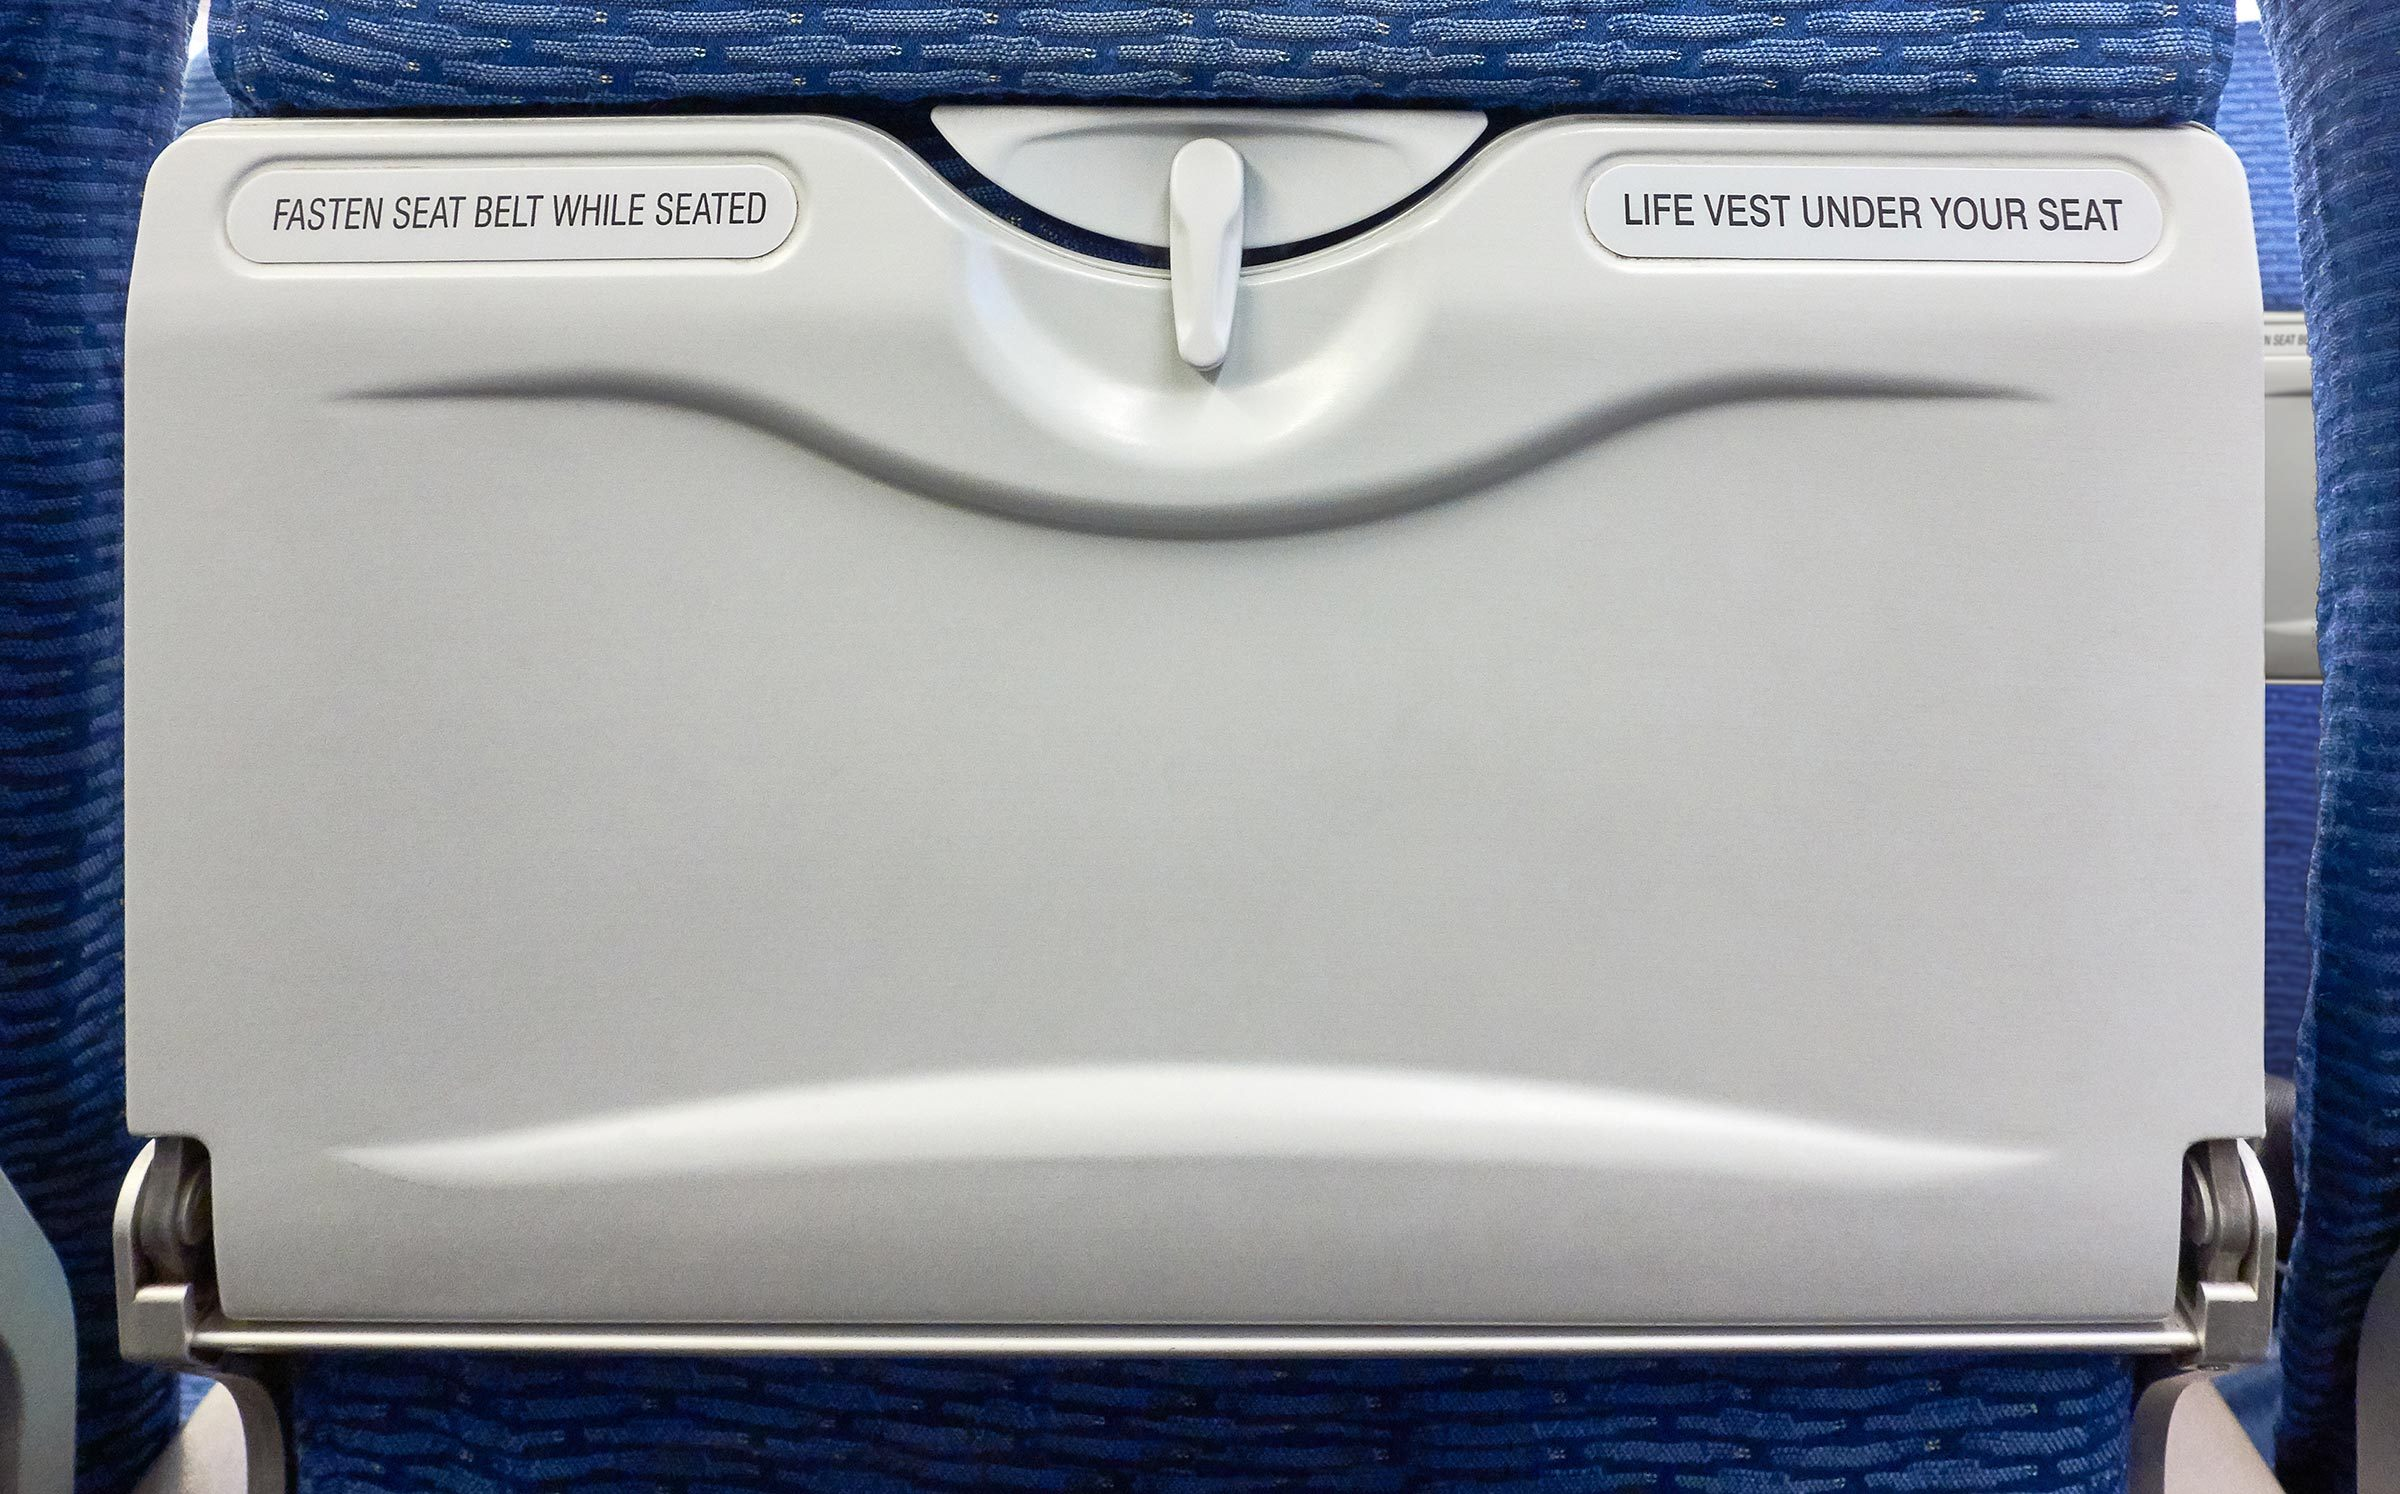 Airplane Tray Table on seat back for mockup banner or design advertising on blank area, already closed, copy space